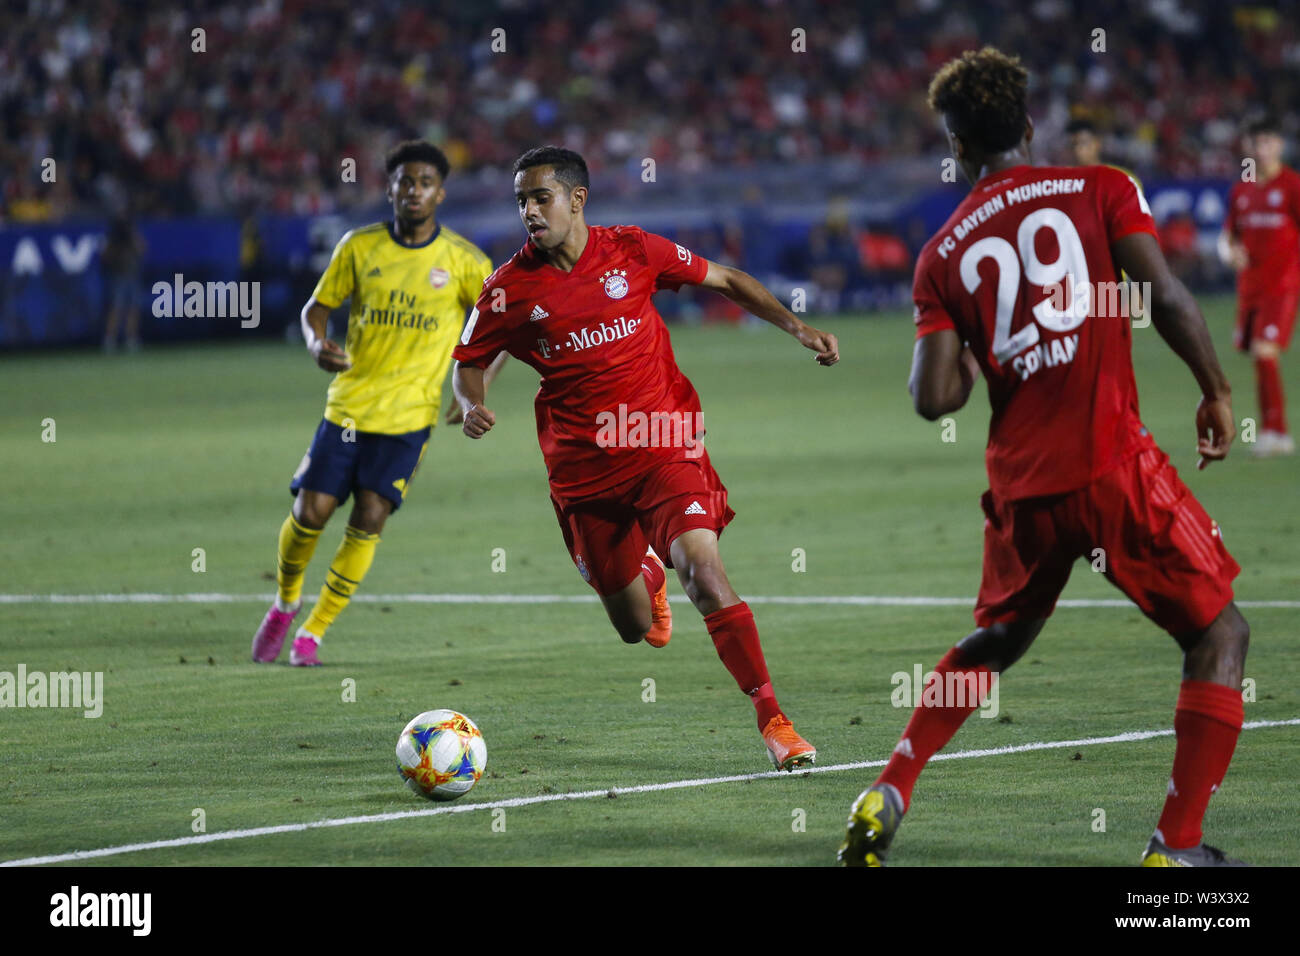 Los Angeles, California, USA. 17th July, 2019. Bayern Munich forward Sarpreet Singh (42) drives the ball during the 2019 International Champions Cup (ICC) match between Arsenal and Bayern Munich in Carson, California, July 17, 2019. Arsenal won 2-1. Credit: Ringo Chiu/ZUMA Wire/Alamy Live News - Stock Image